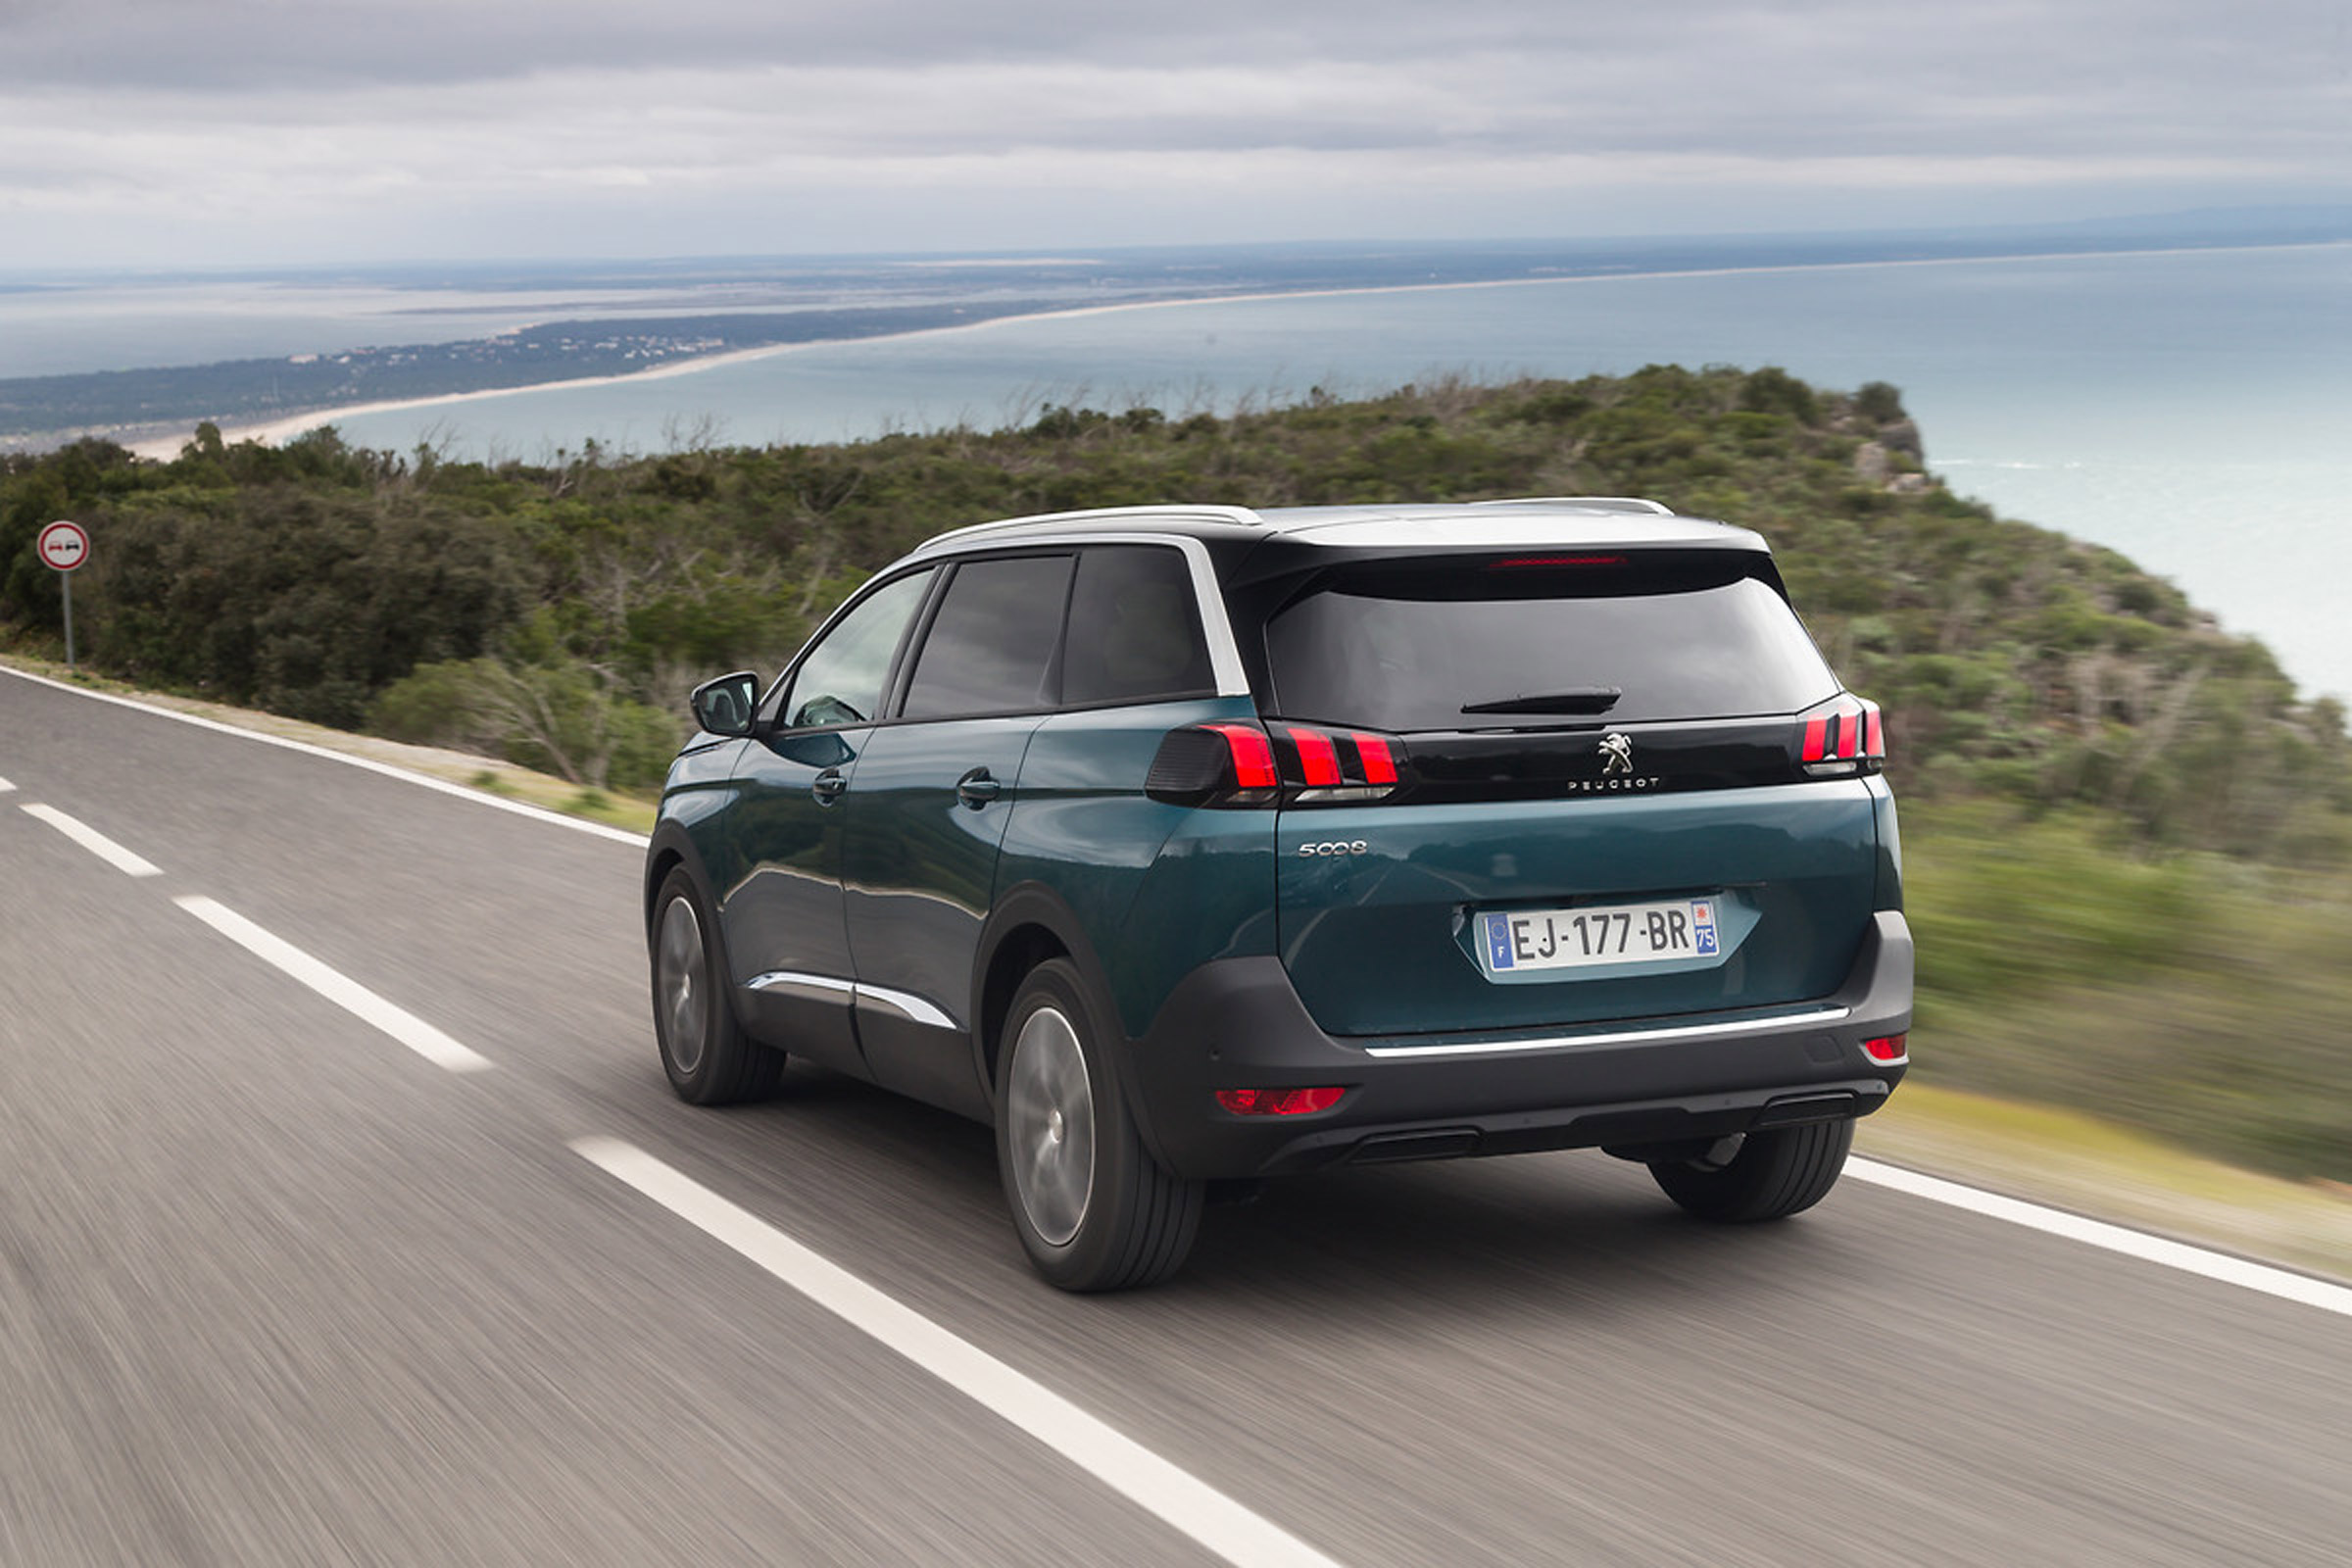 2017 Peugeot 5008 SUV Test Drive Rear View (View 17 of 18)